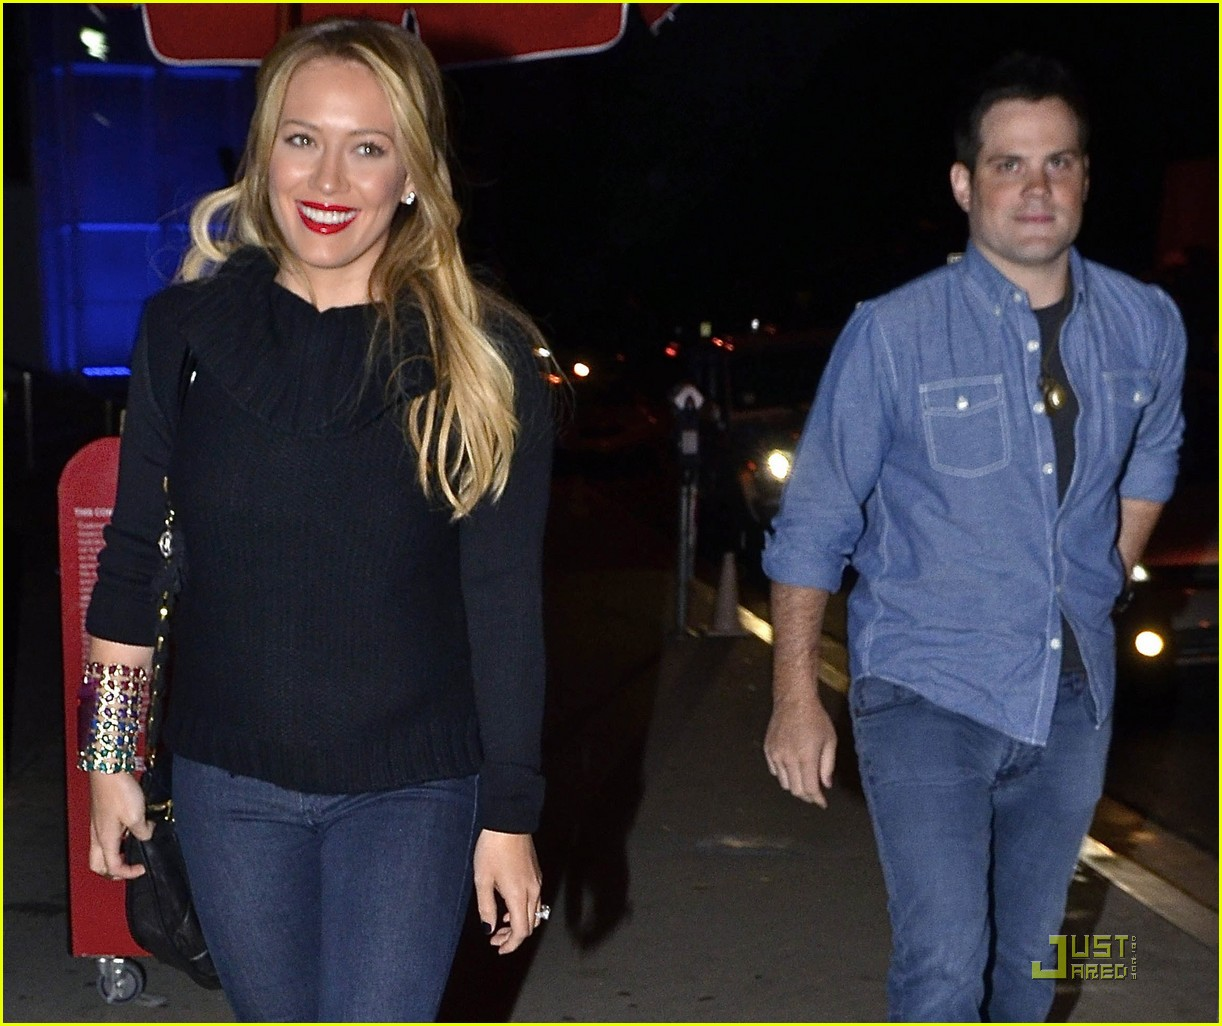 Hilary Duff: Dinner Date with Mike Comrie! Hilary Duff